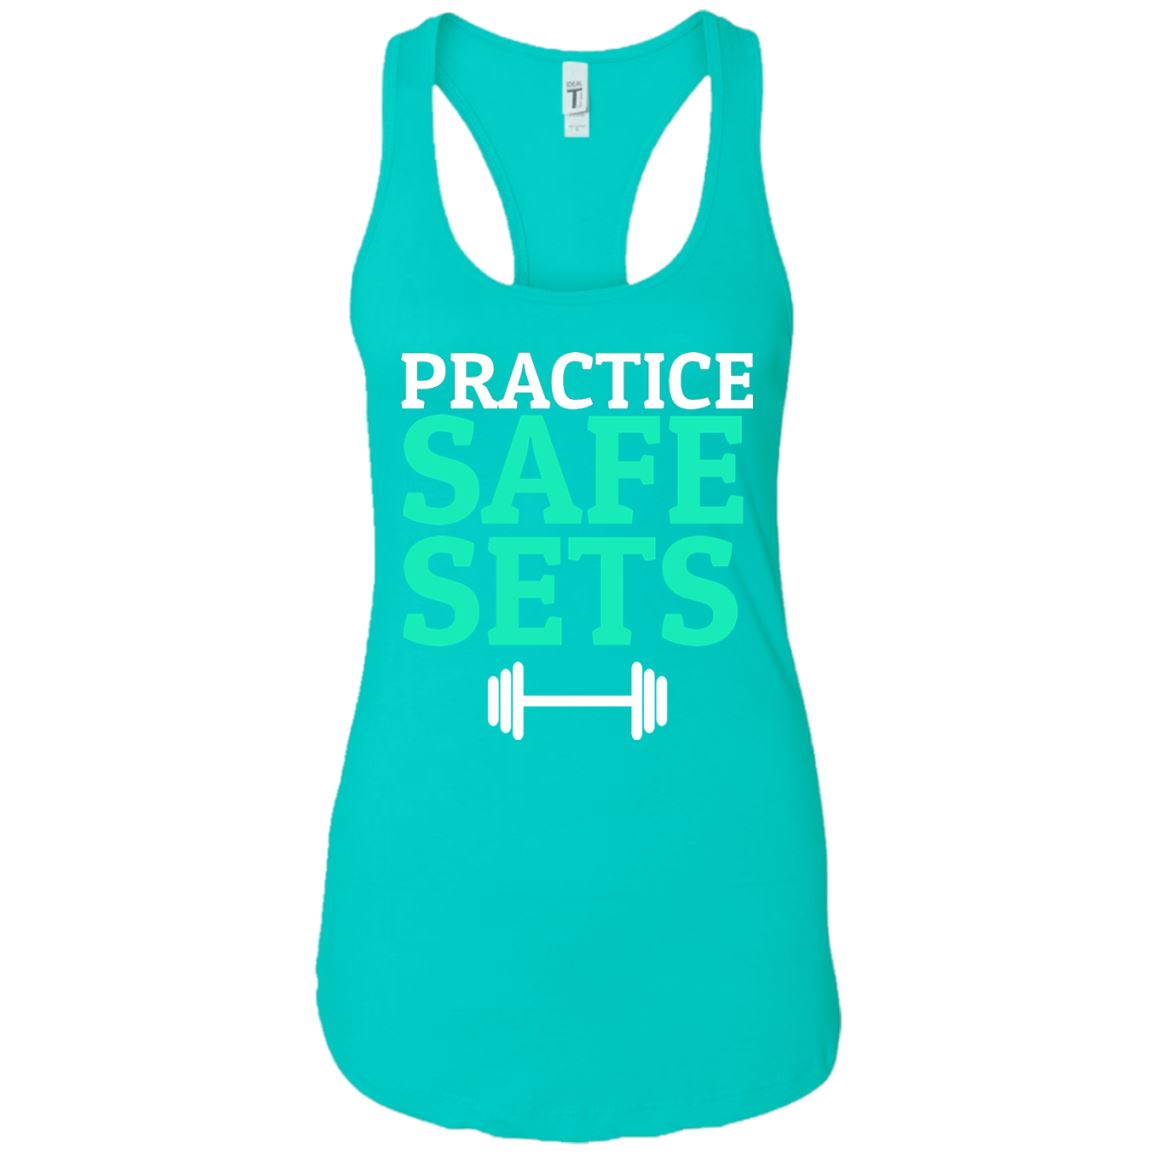 Practice Safe Sets Womens Racerback Tank T-Shirts Tahiti Blue X-Small